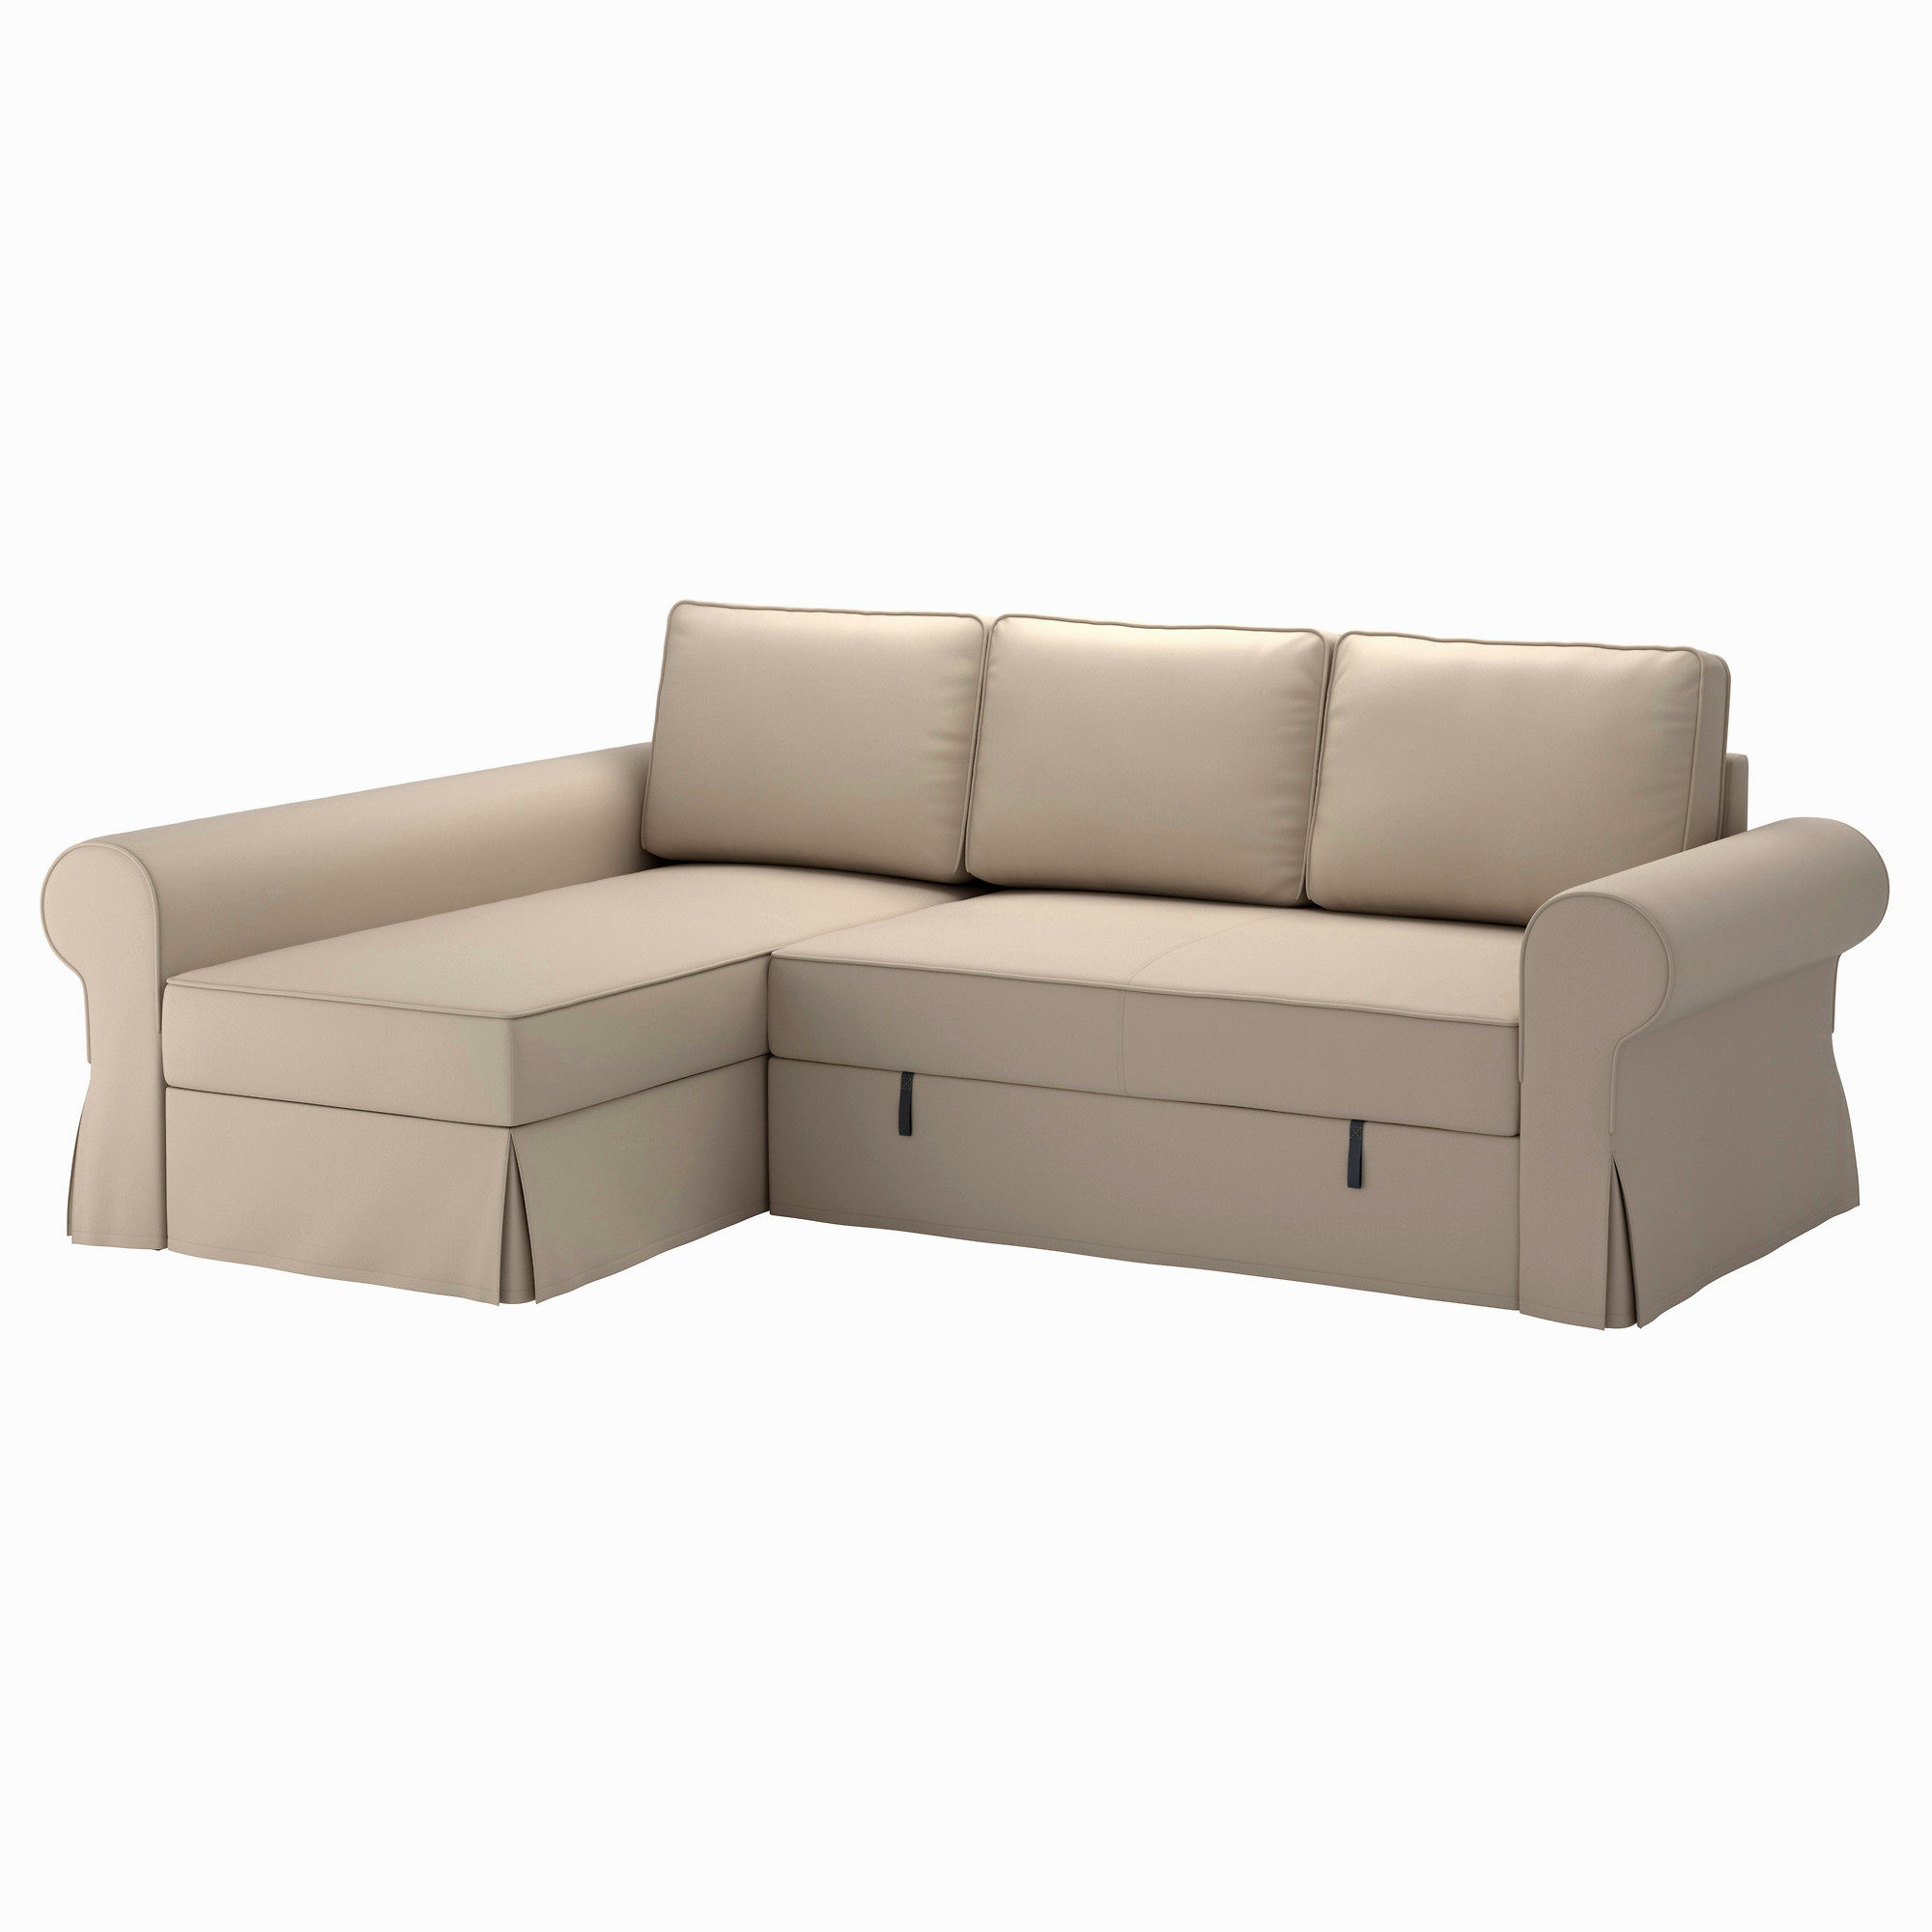 cool leather sofa bed sale picture-Sensational Leather sofa Bed Sale Online